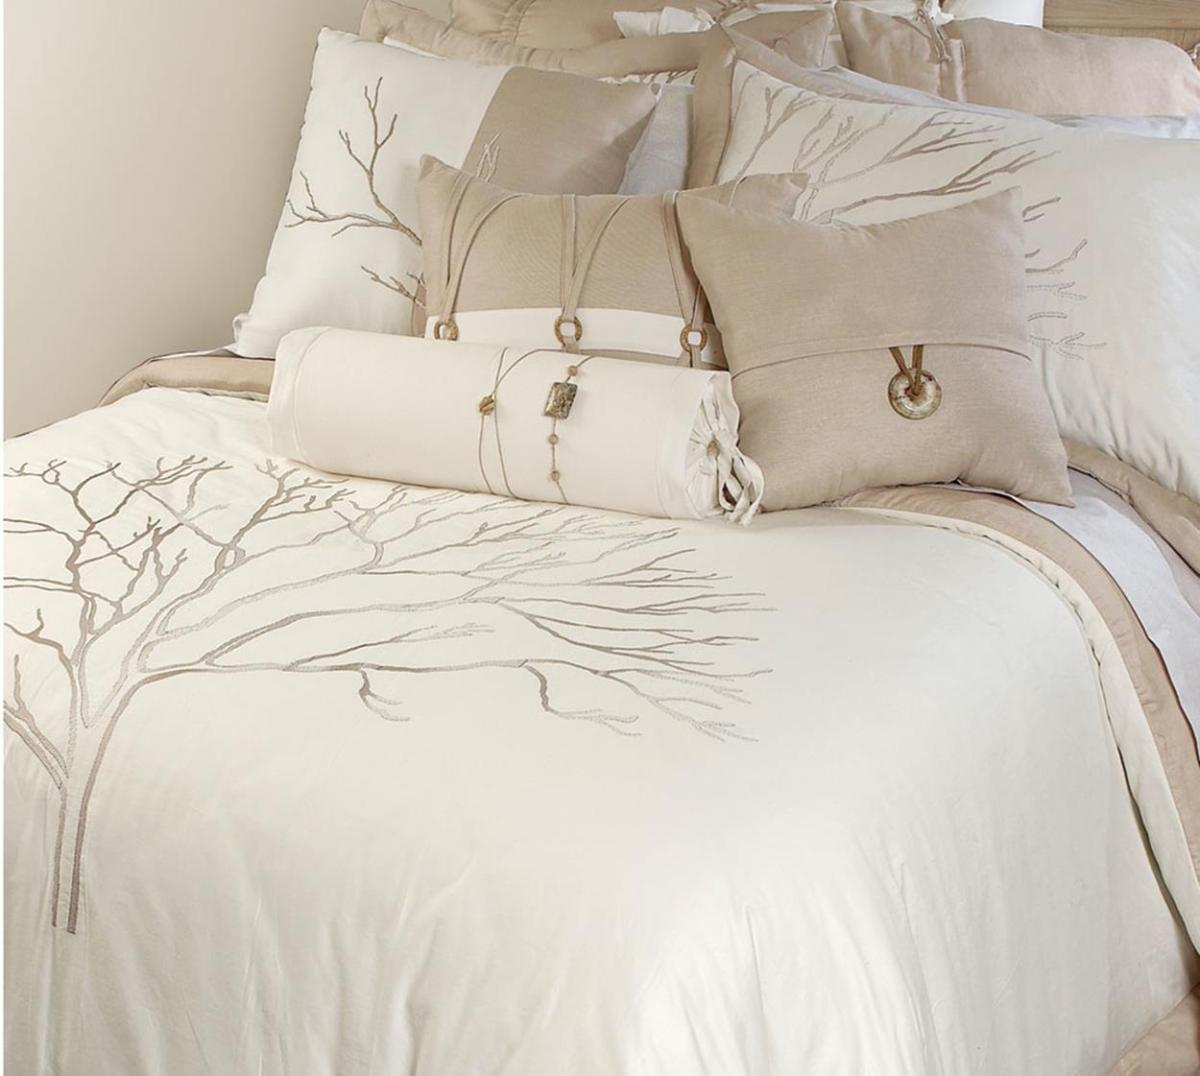 Bed Linen Decorating Ideas 4